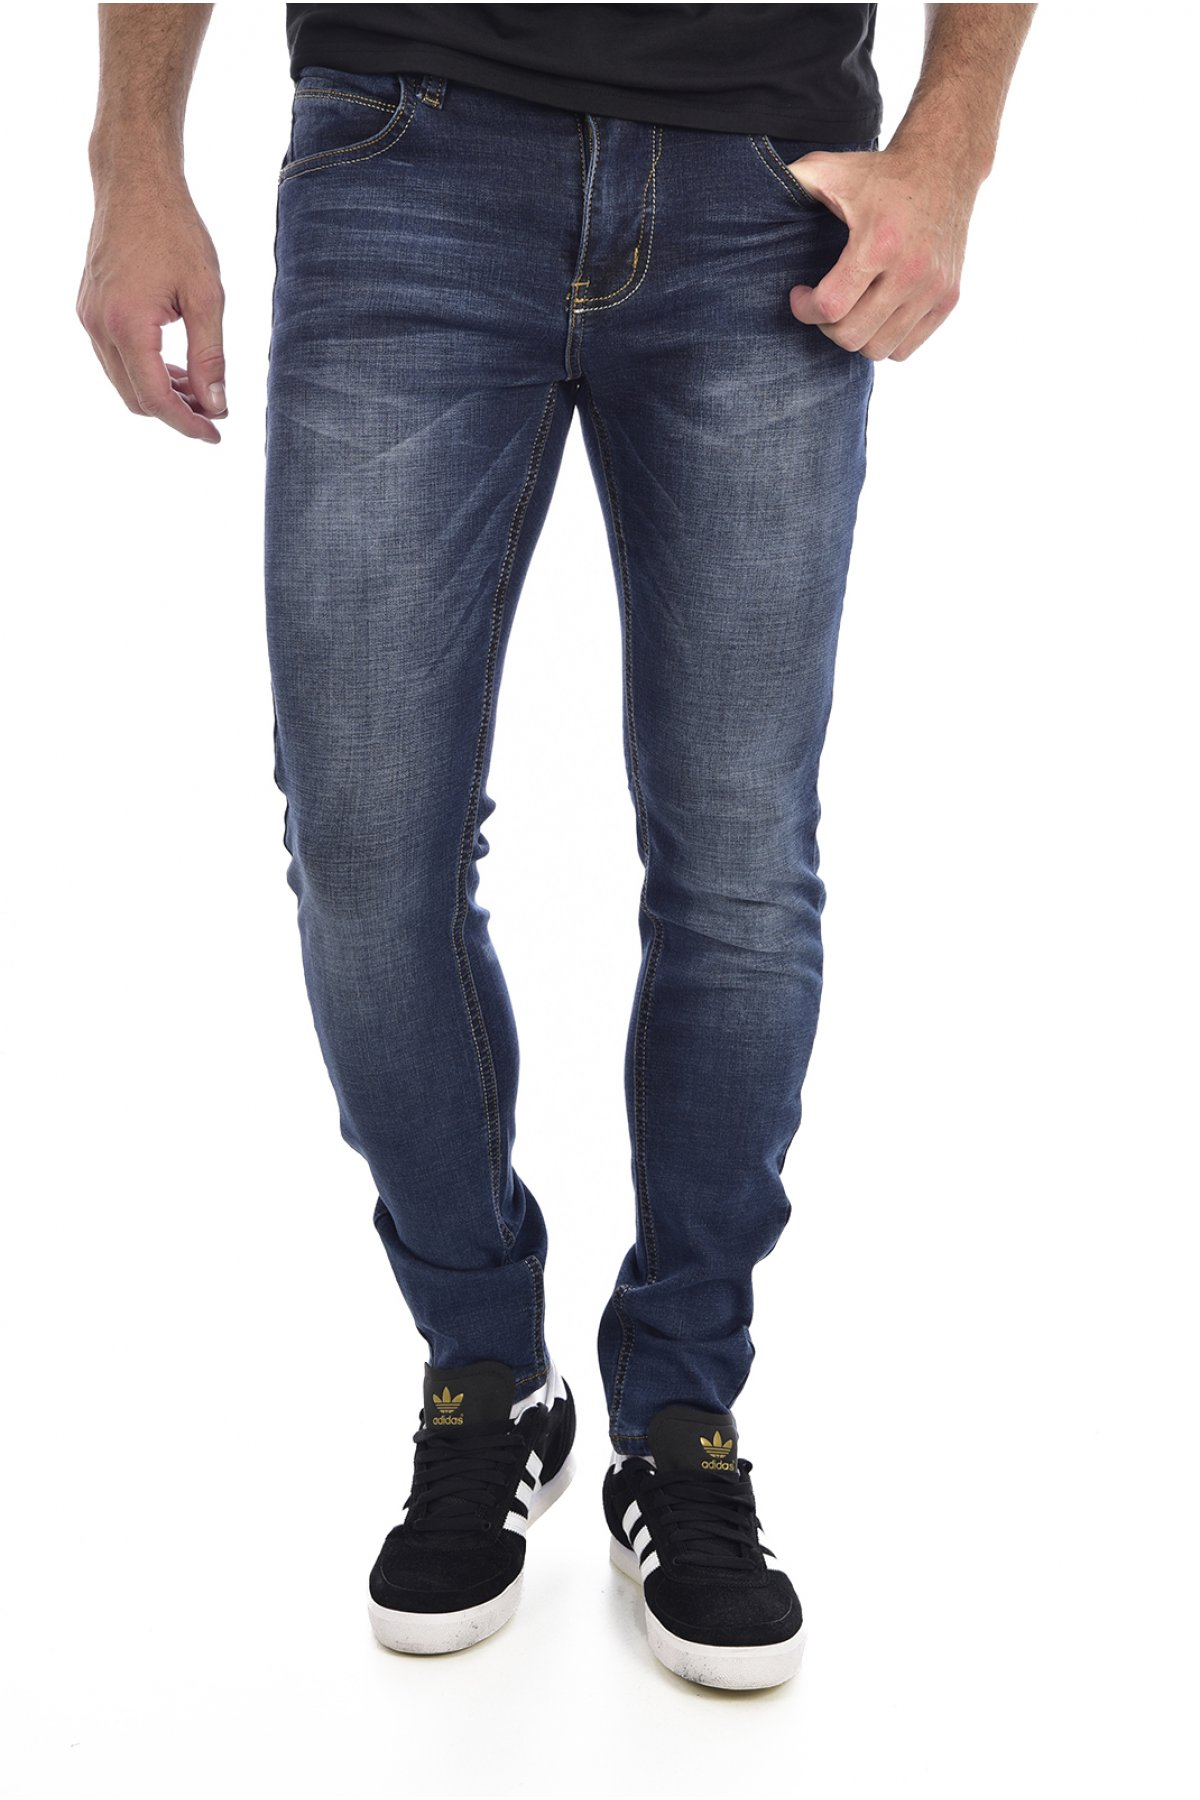 Jean Slim Stretch 5141 - Leo Gutti